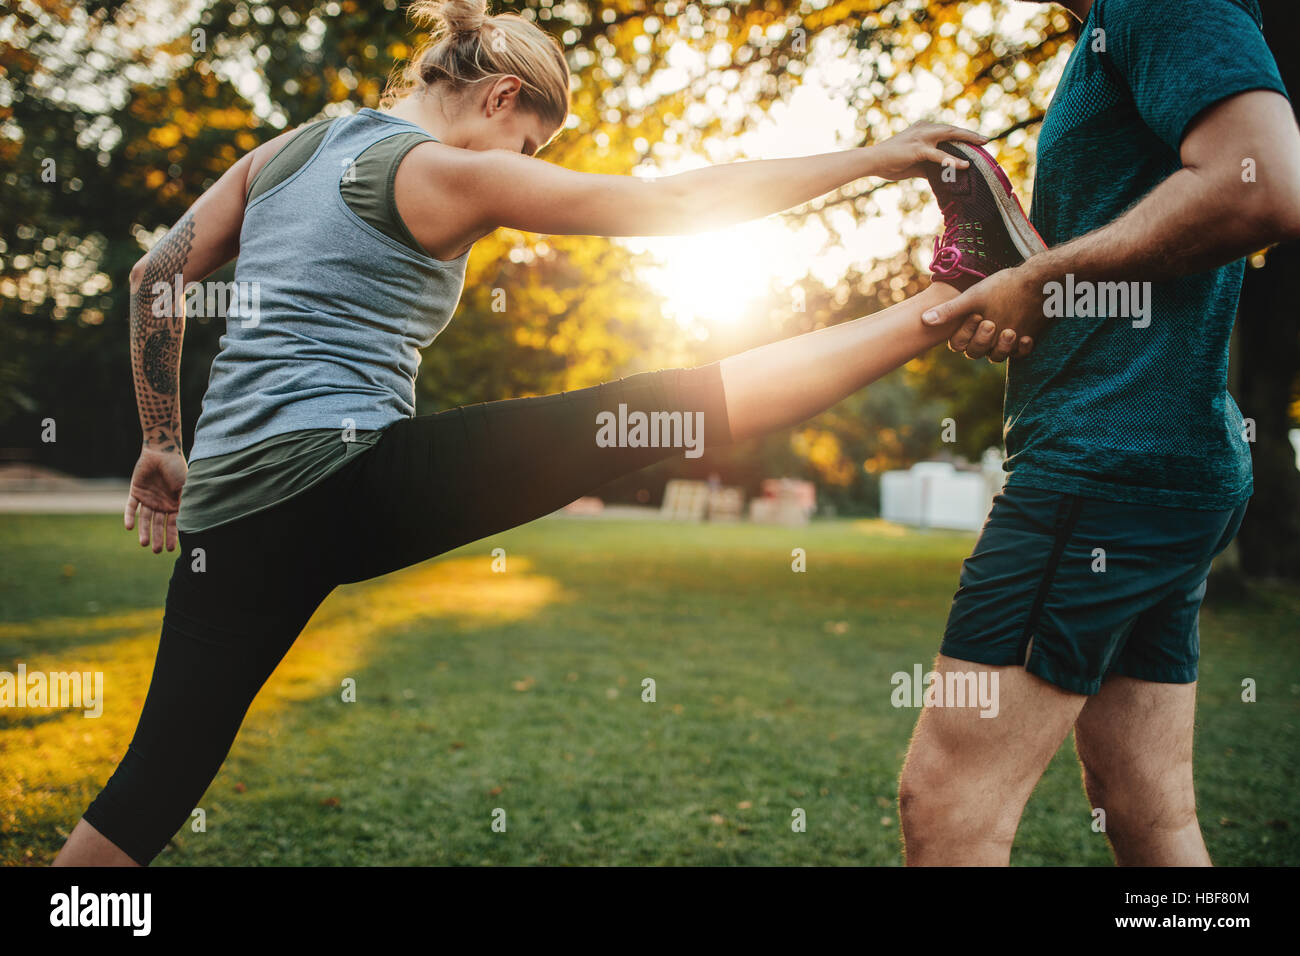 Entraîneur masculin aider young woman exercising in park. Trainer helping woman en étirement des jambes Photo Stock